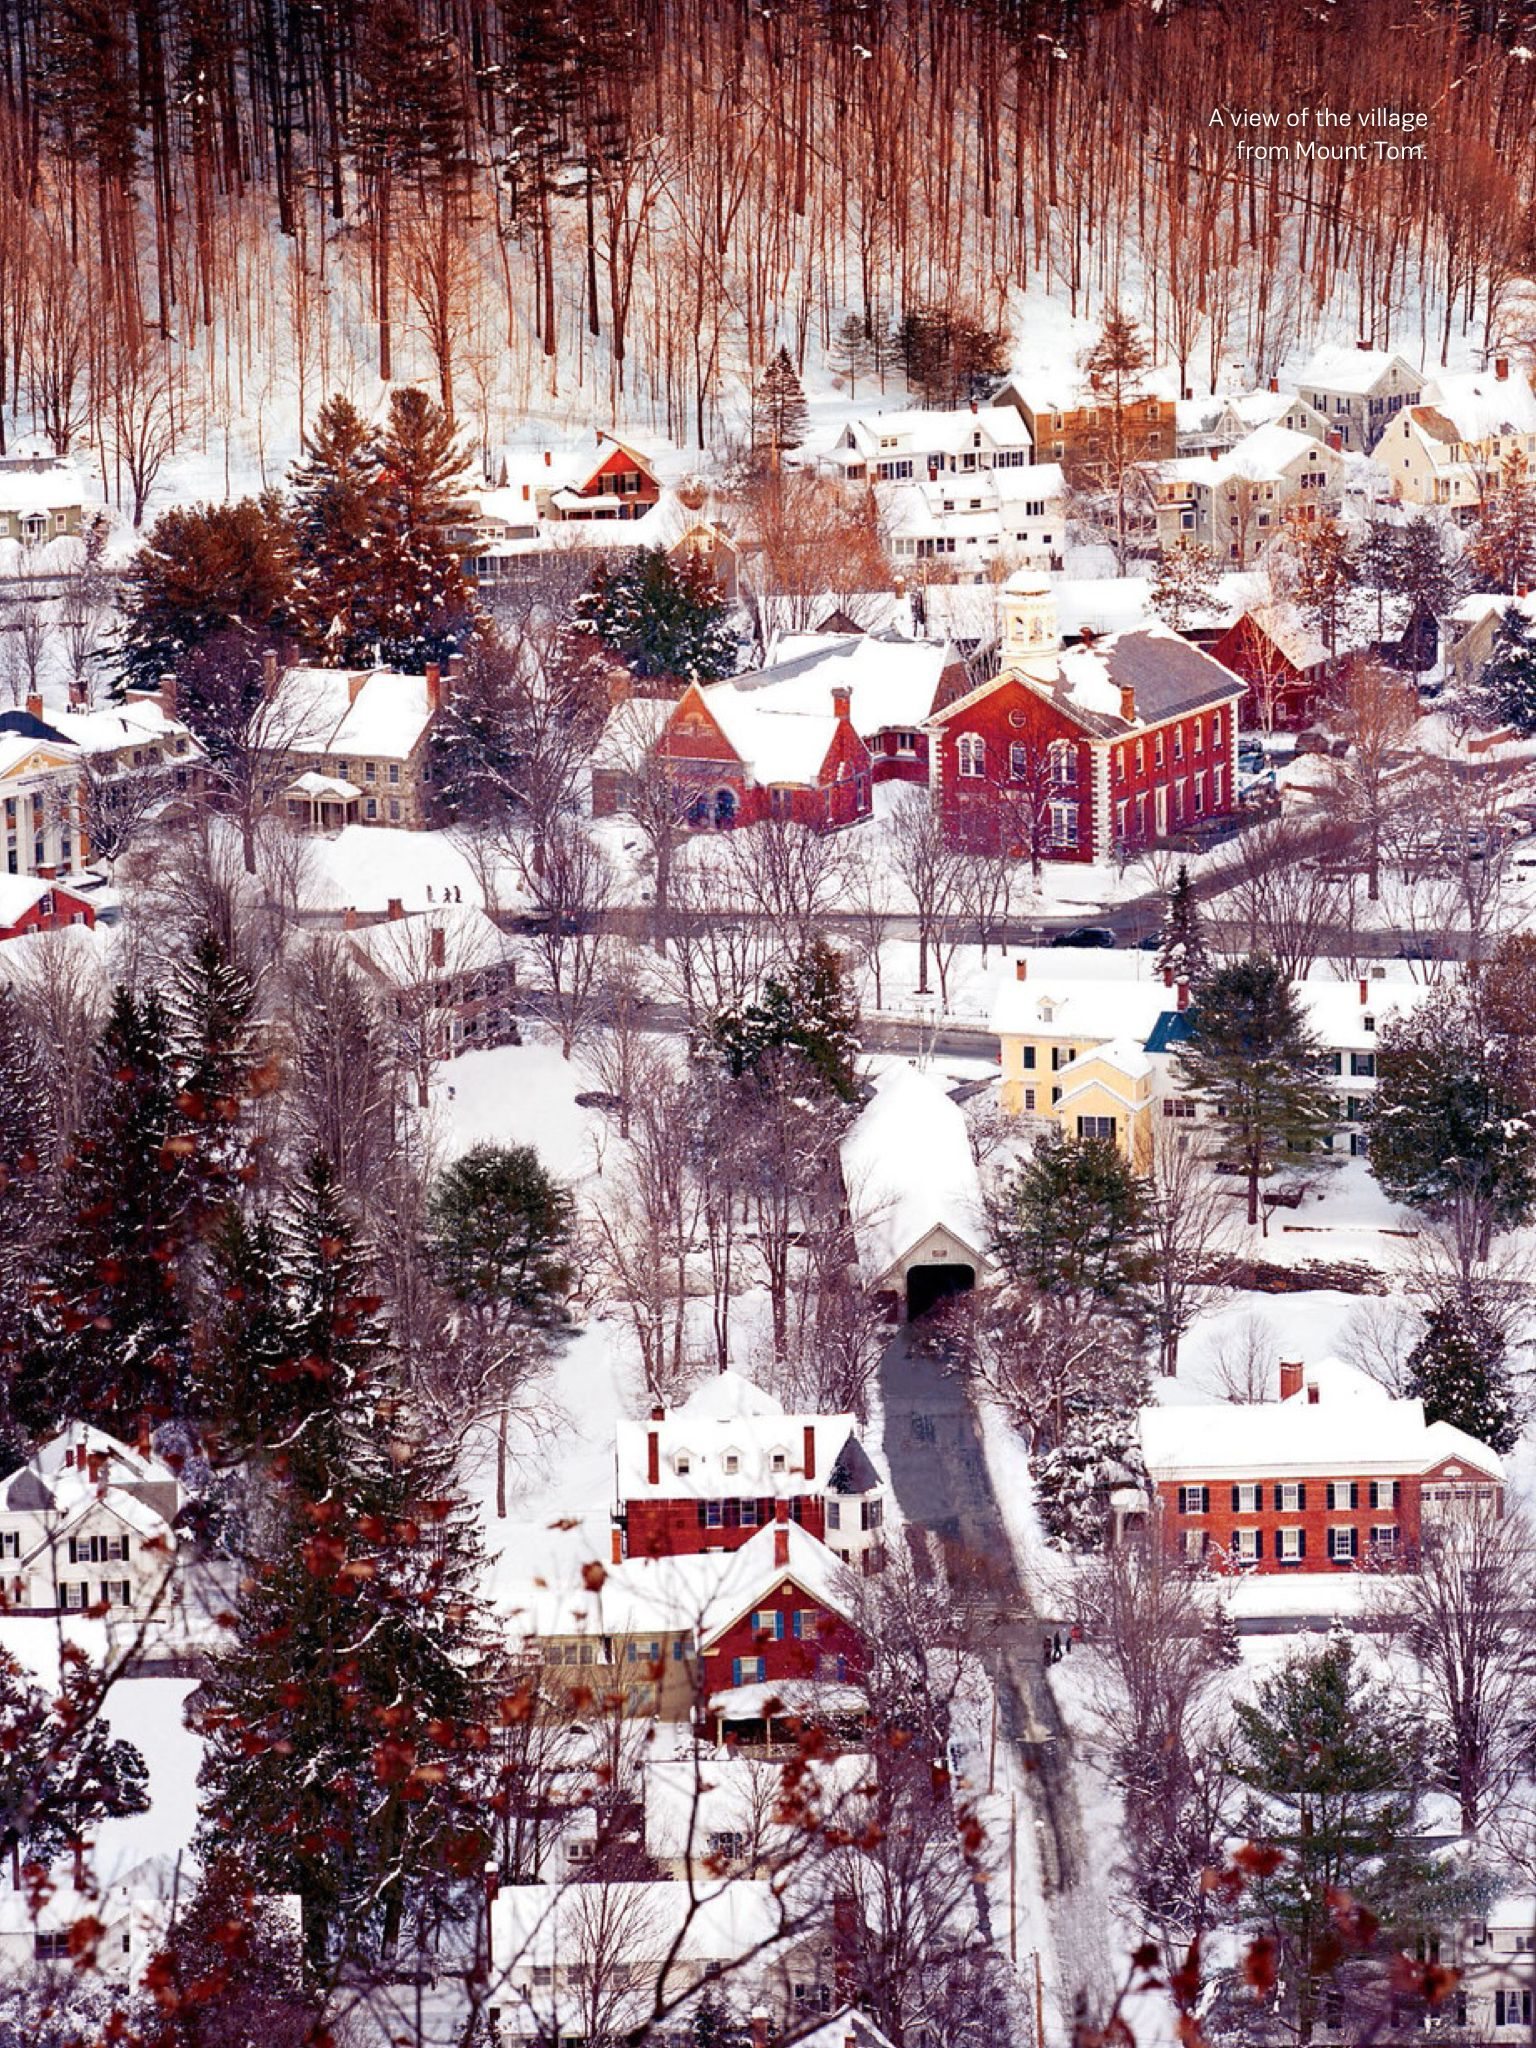 Woodstock Vt Christmas 2019 Real Christmas Village in Vermont | Christmas in 2019 | Woodstock